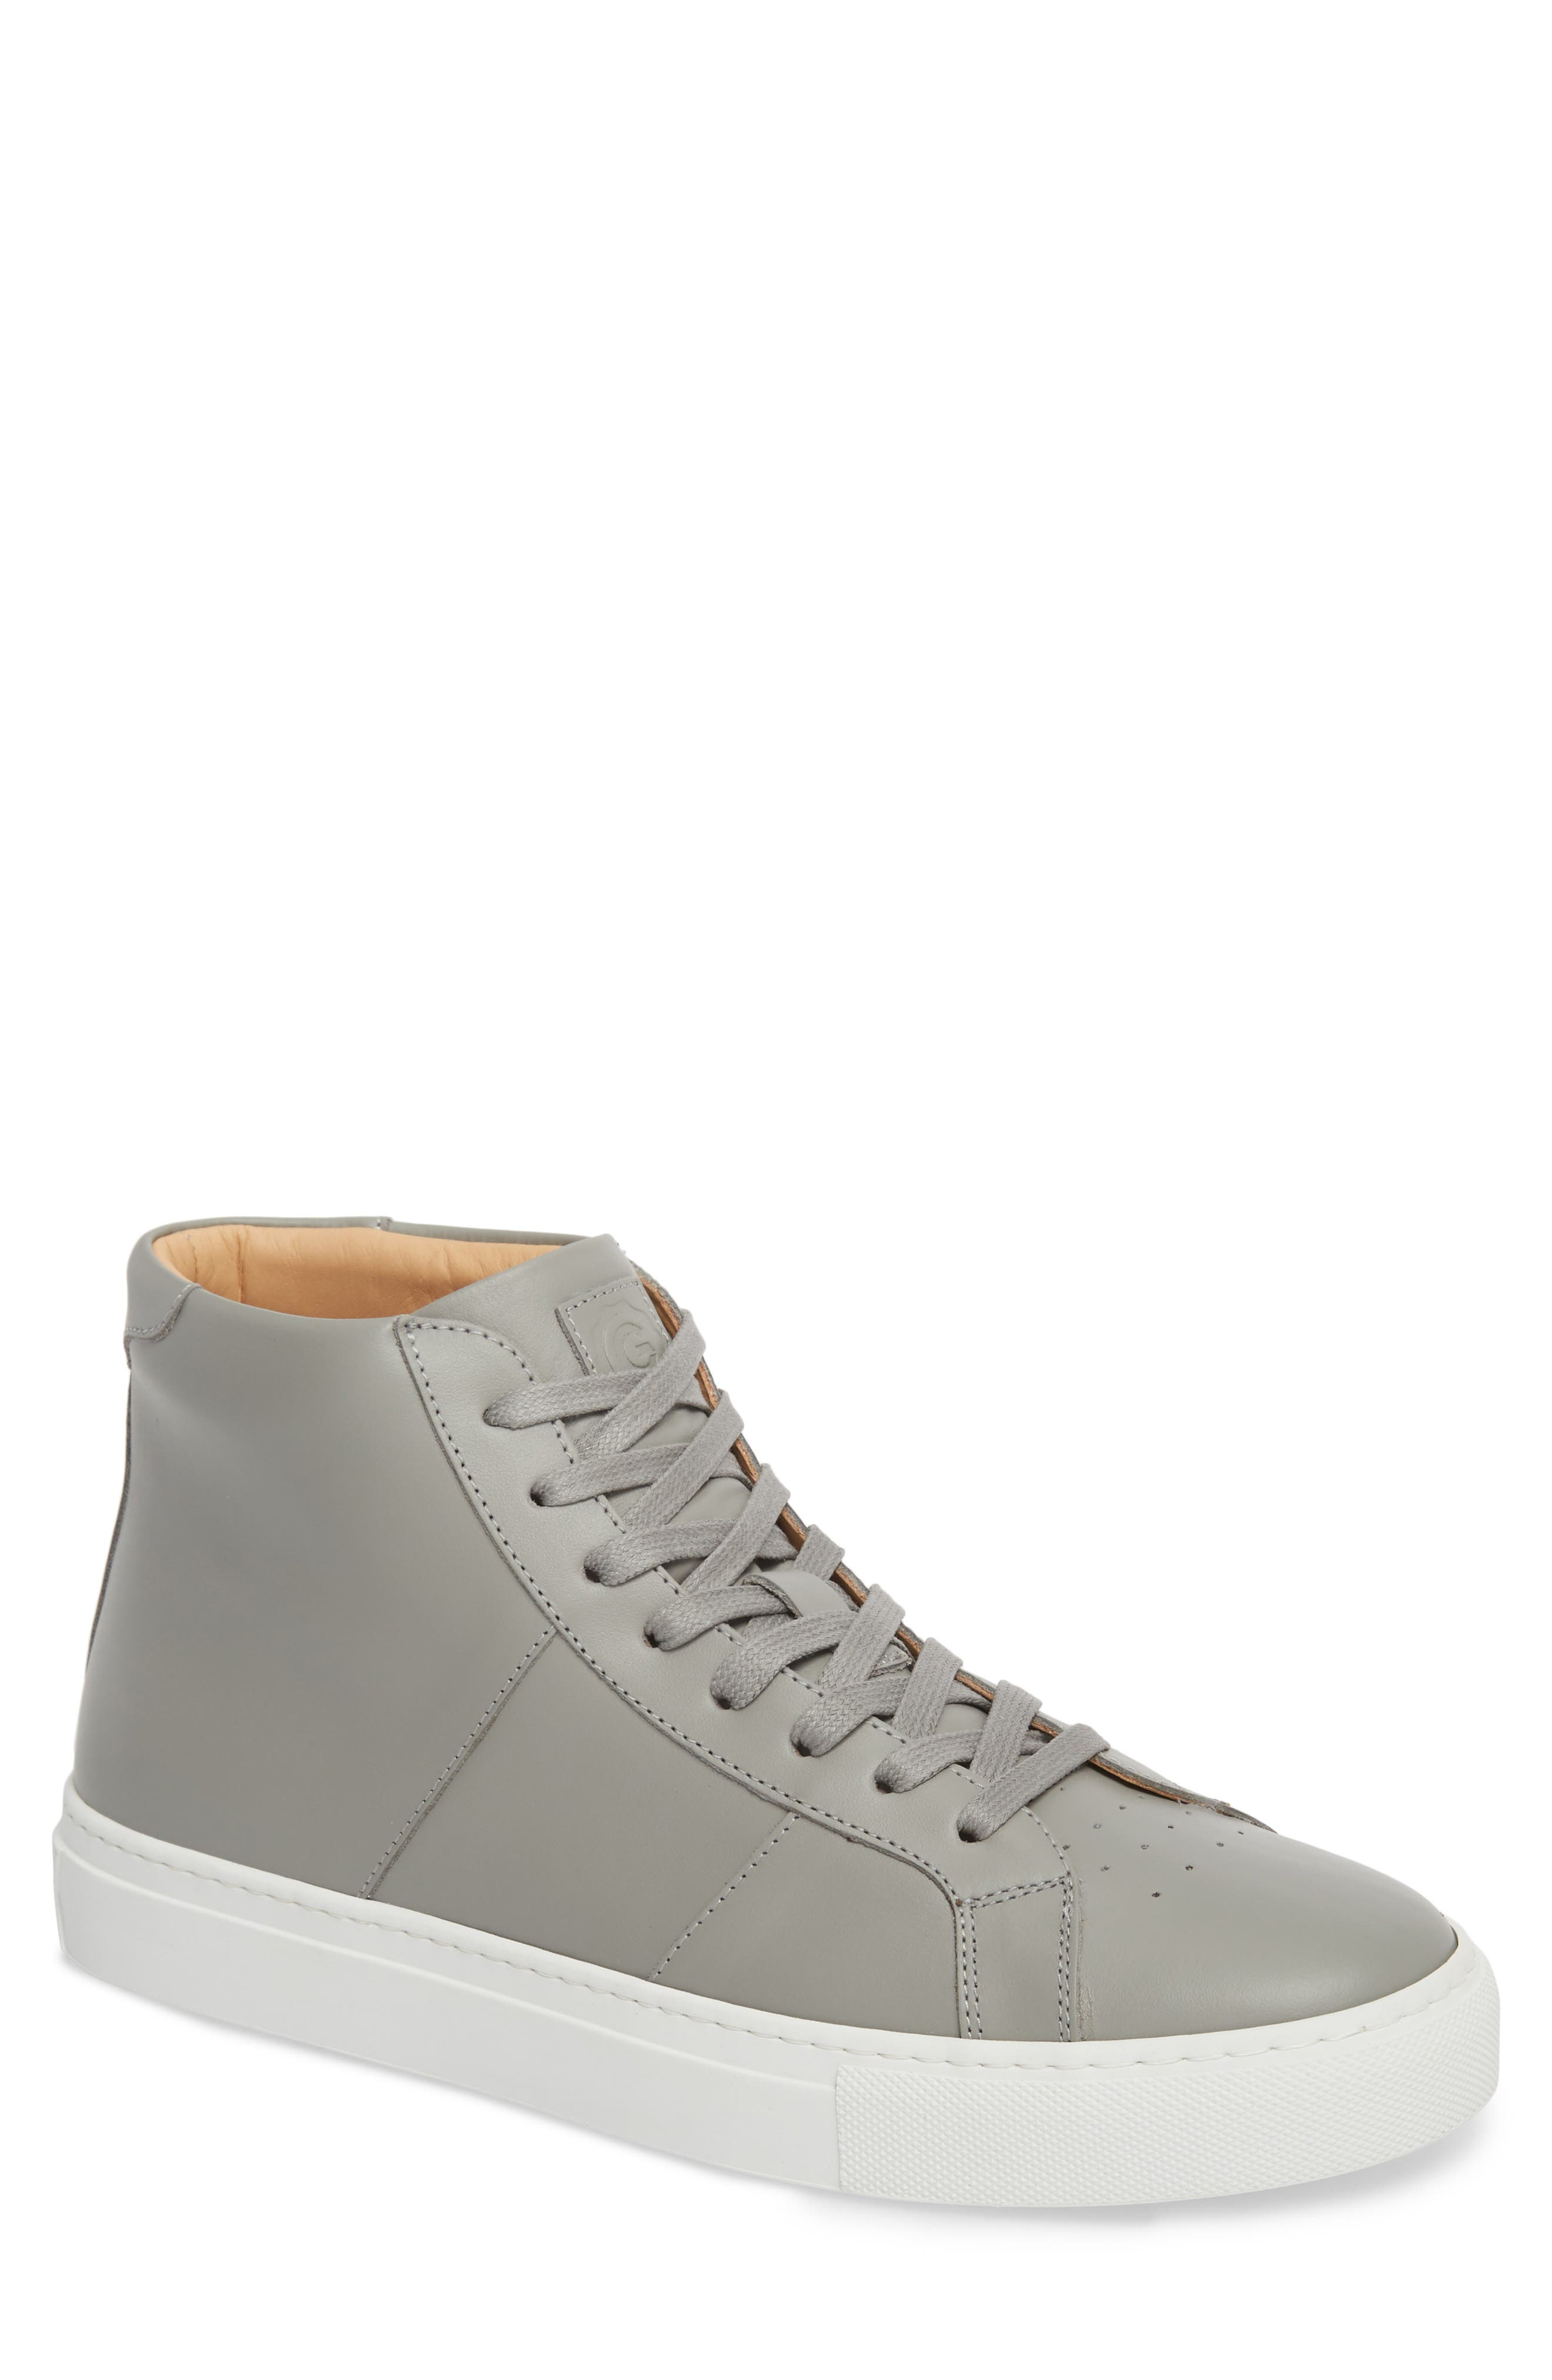 Royale High Top Sneaker,                             Main thumbnail 1, color,                             GREY LEATHER